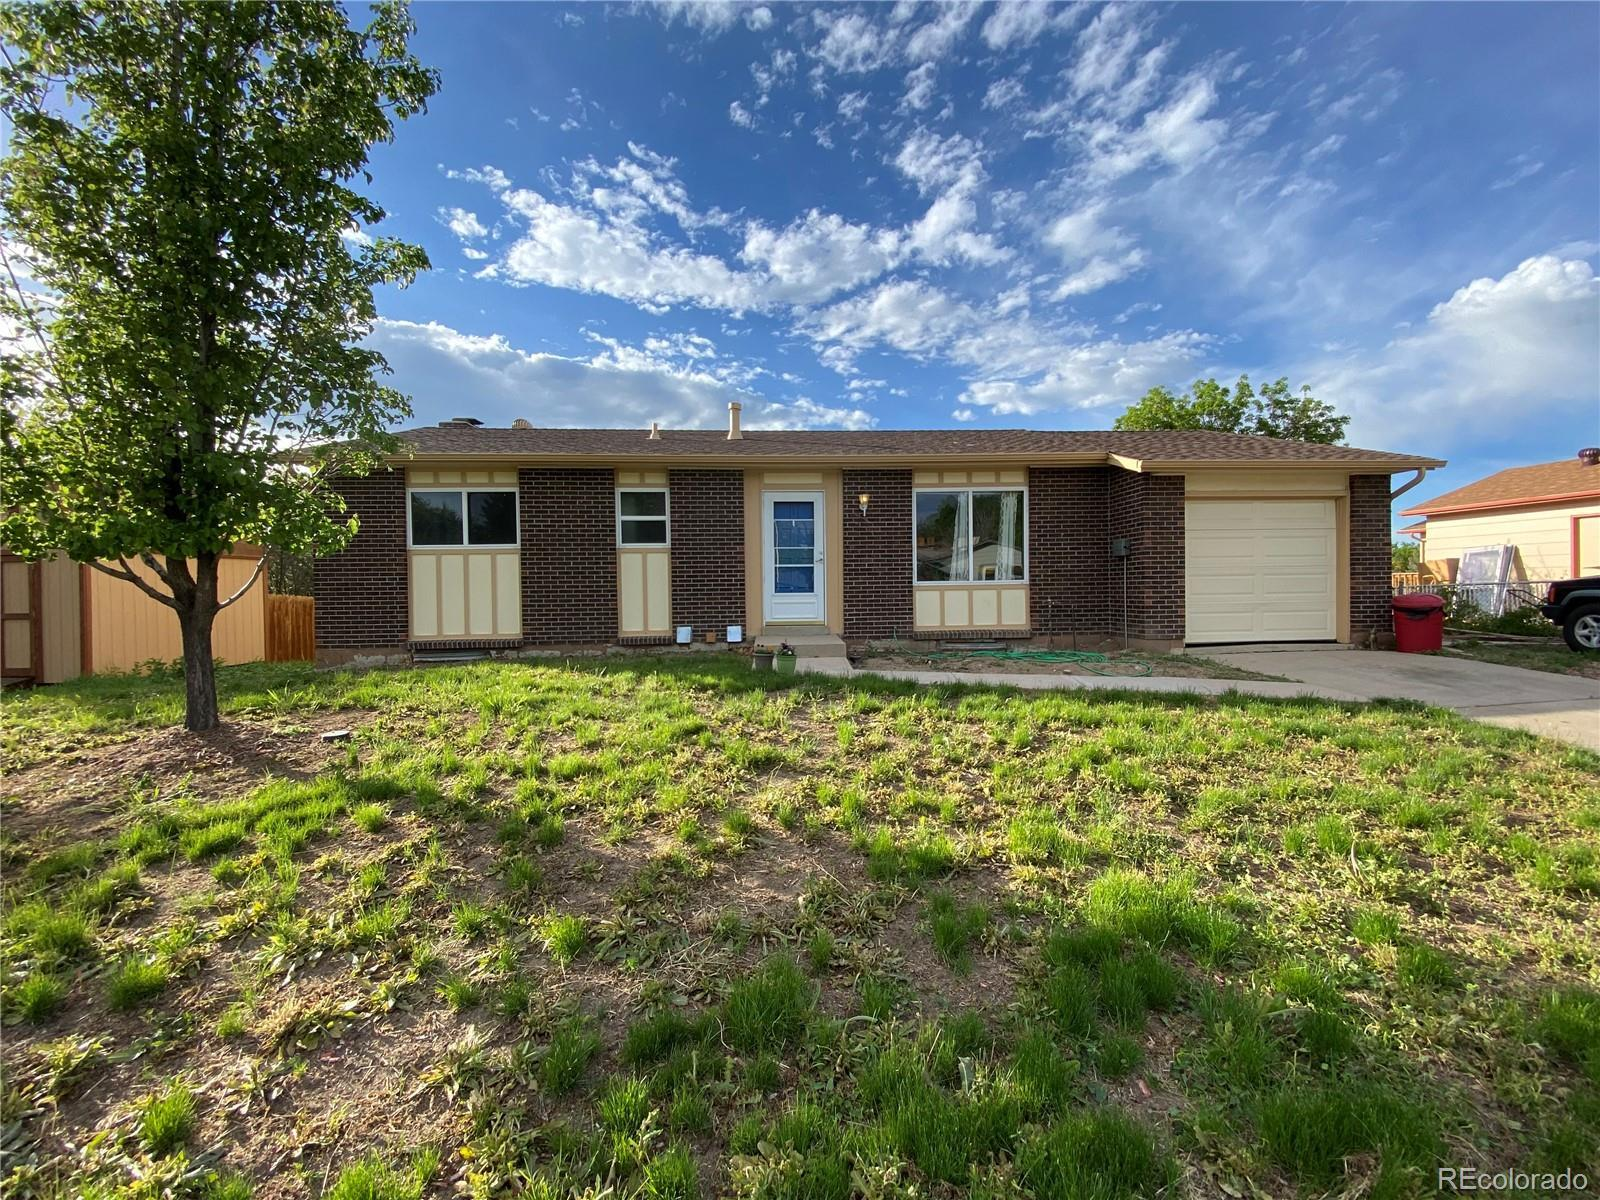 6235 W 75th Place, Arvada, CO 80003 - #: 5660191